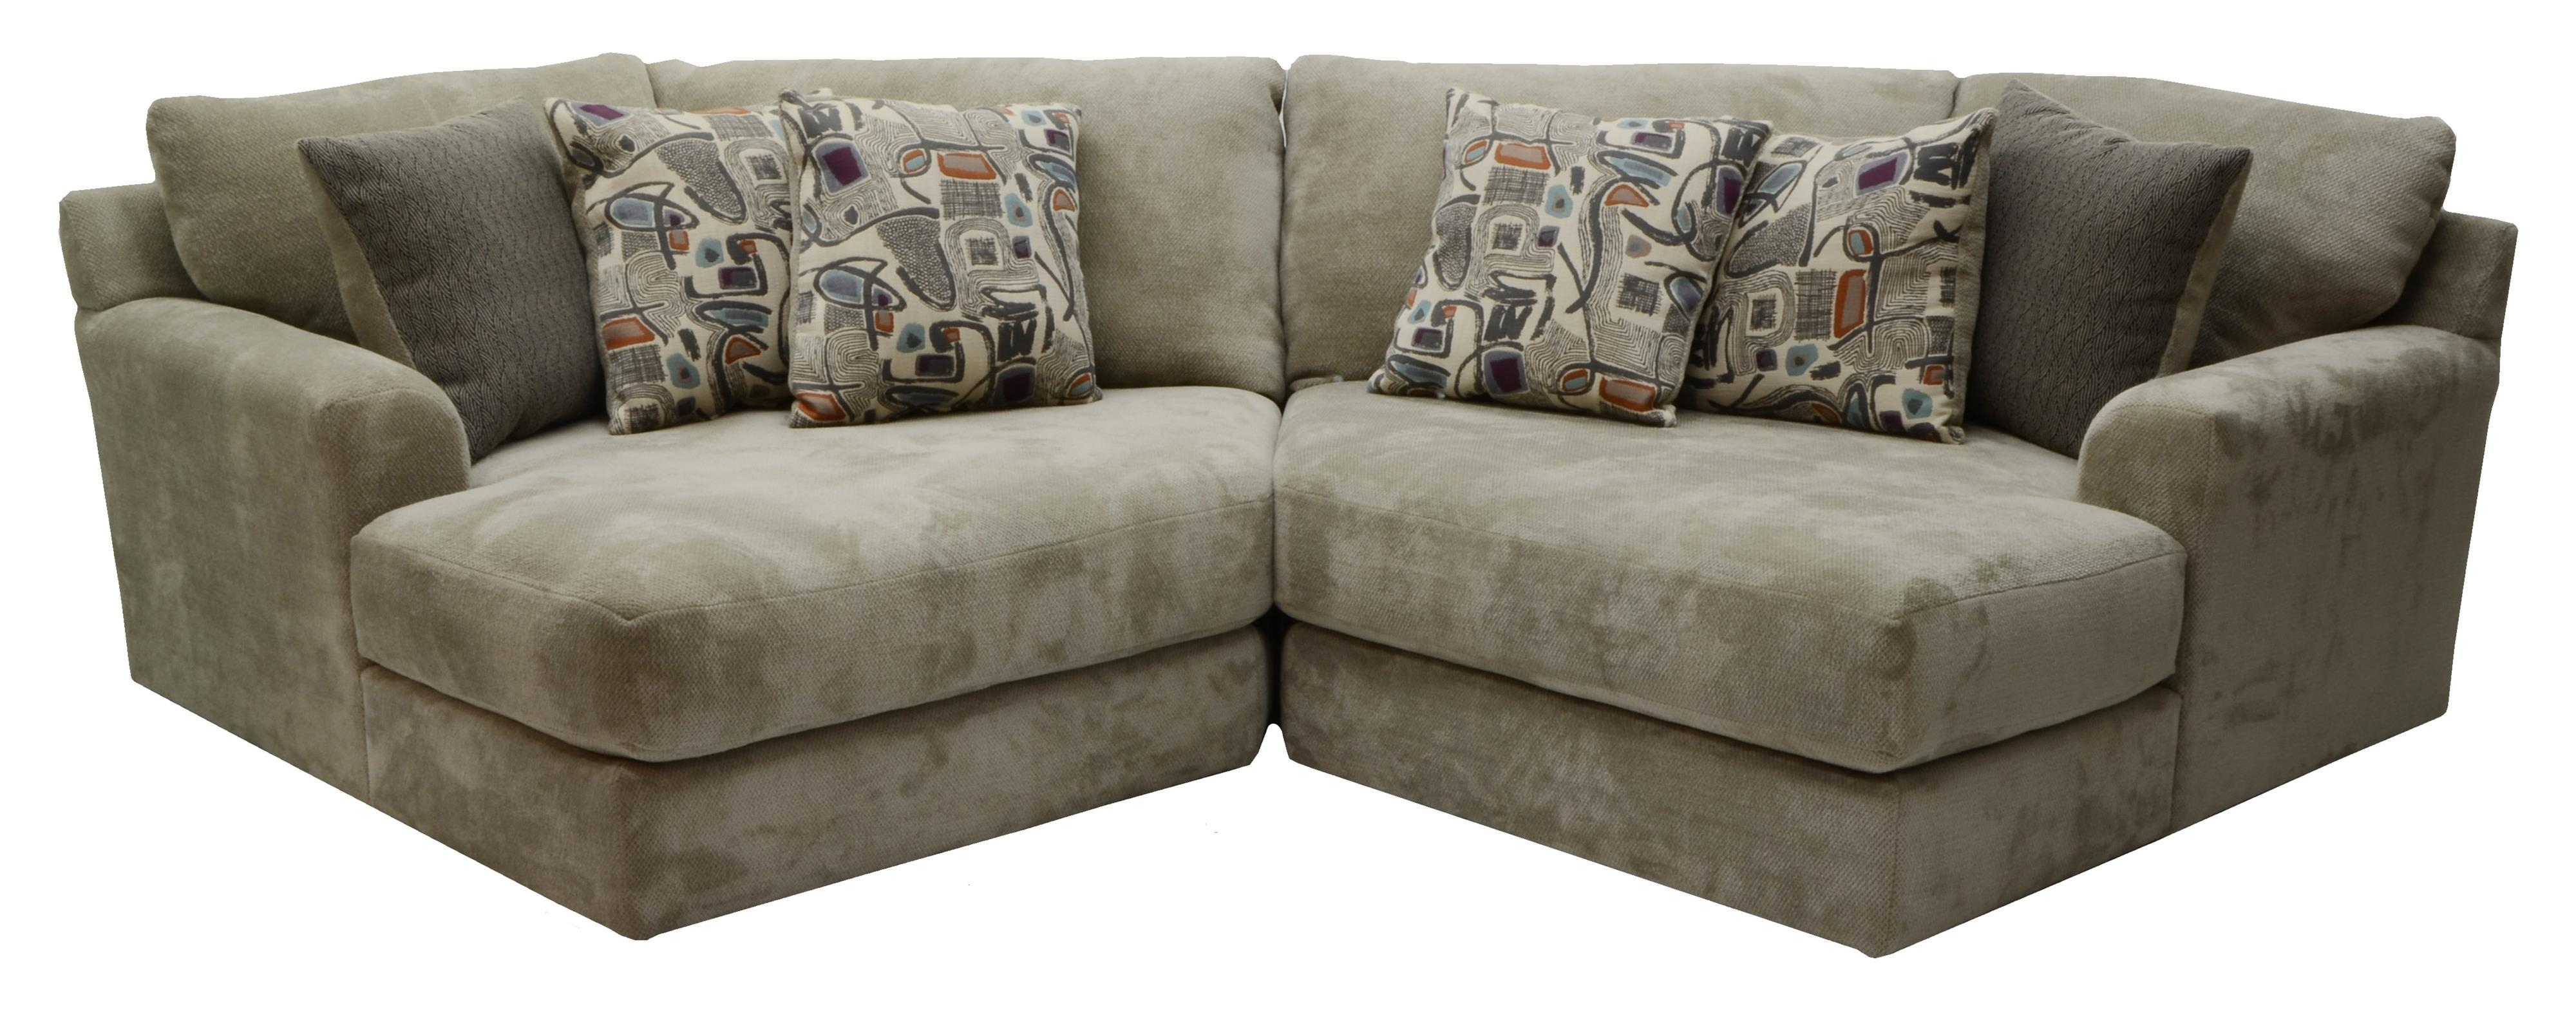 Two Seat Sectionaljackson Furniture | Wolf And Gardiner Wolf Intended For 2 Seat Sectional Sofas (View 10 of 15)